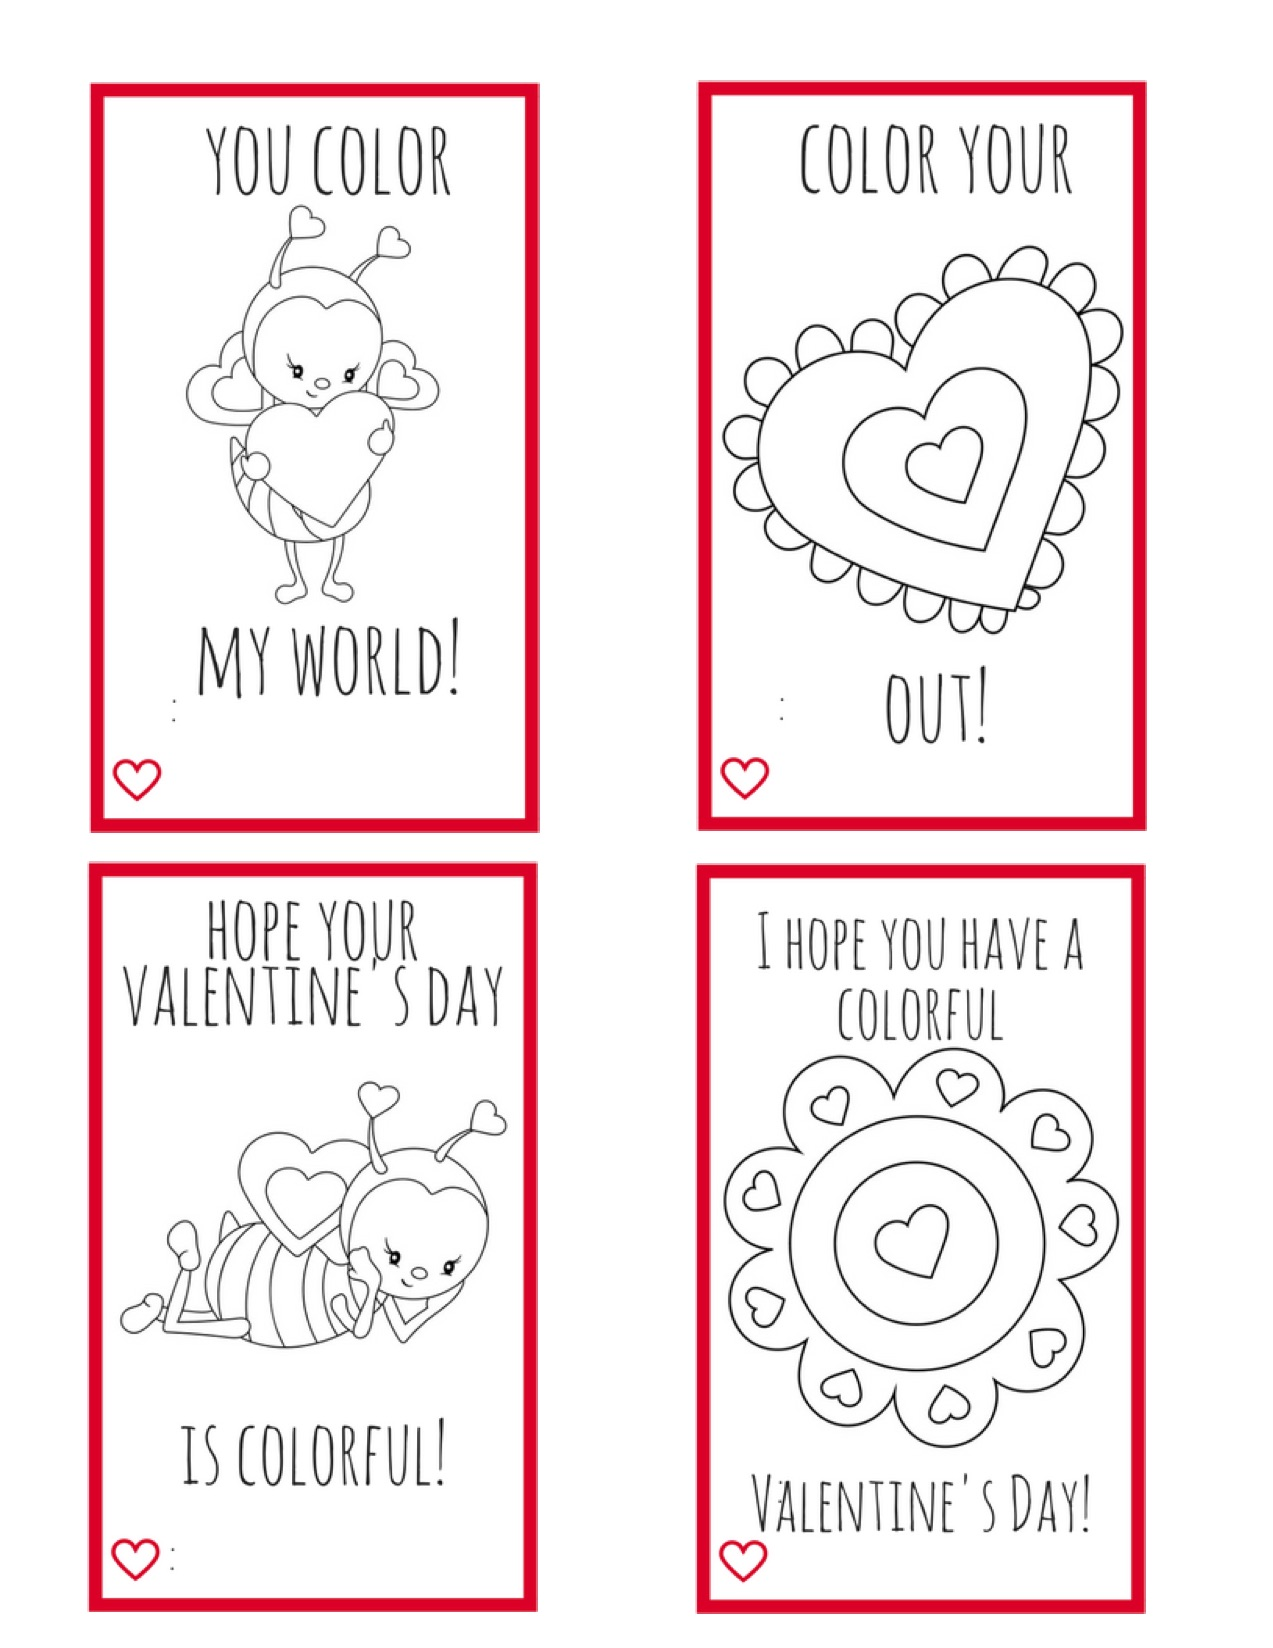 Printable Valentine Cards For Kids Perfect For Kids To Make For Their Friends